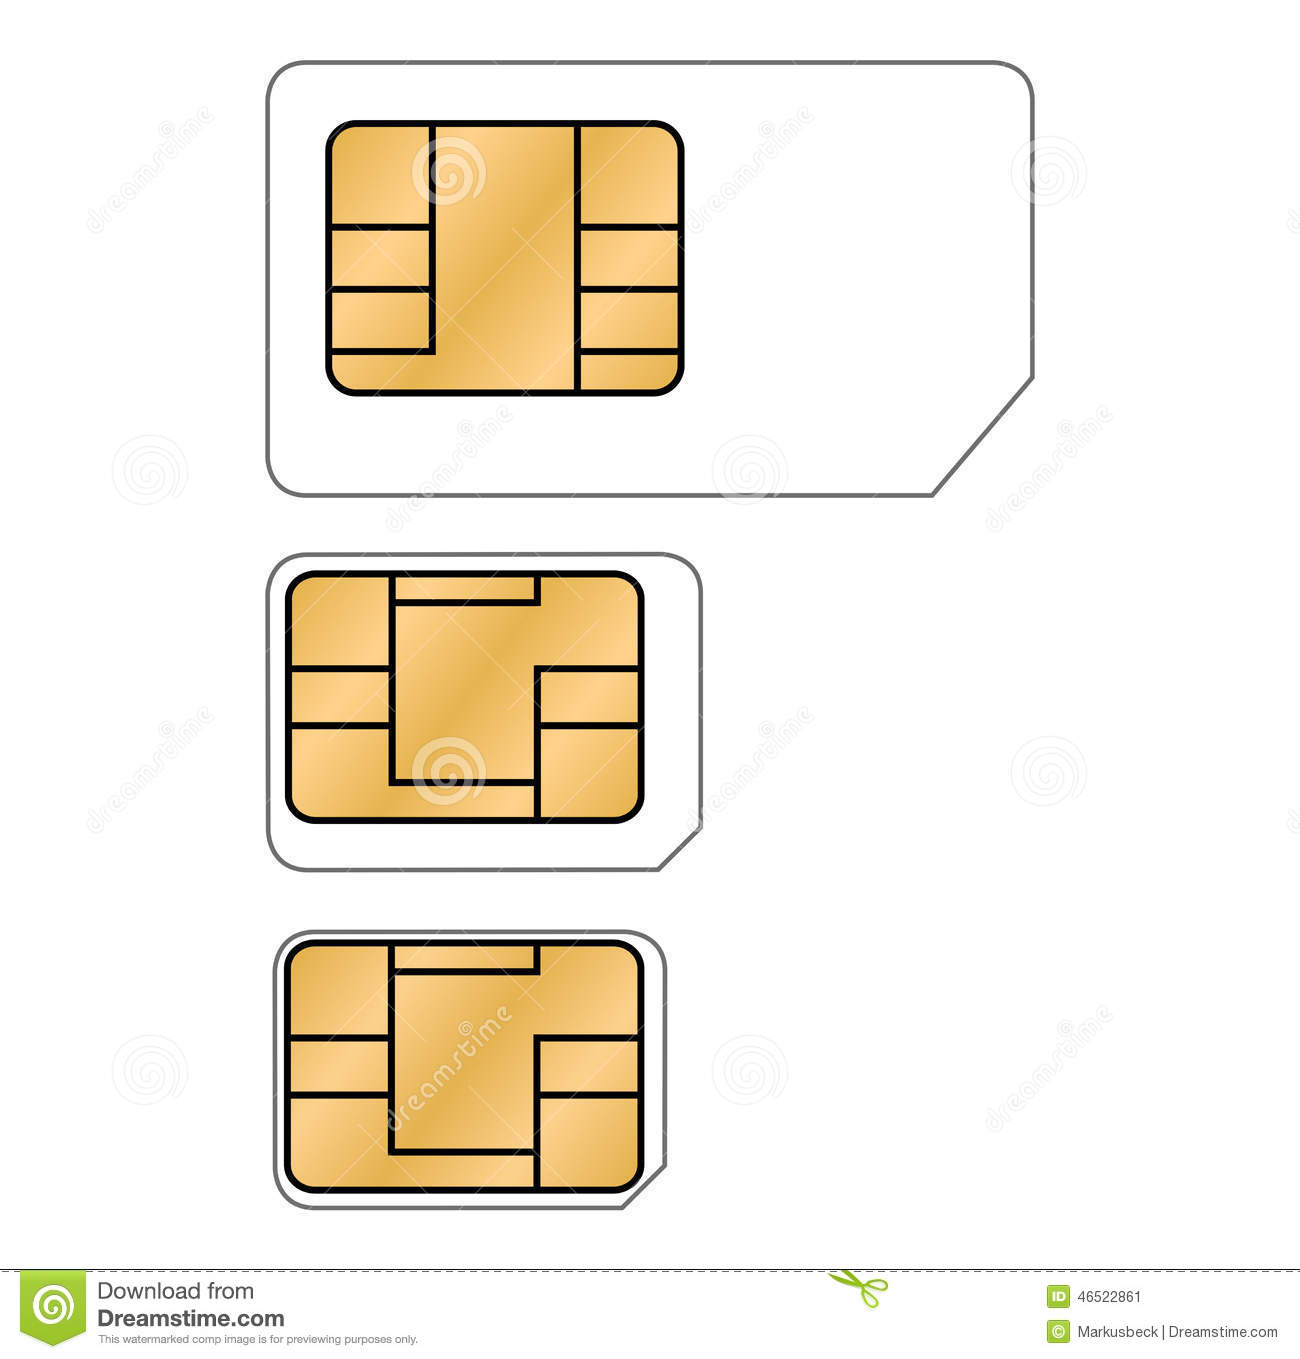 Circuit Sim Card Free Wiring Diagram For You Usb Mobile Charger Engineersgarage Three Different Types Of Cards Stock Photo Image Short Pdf